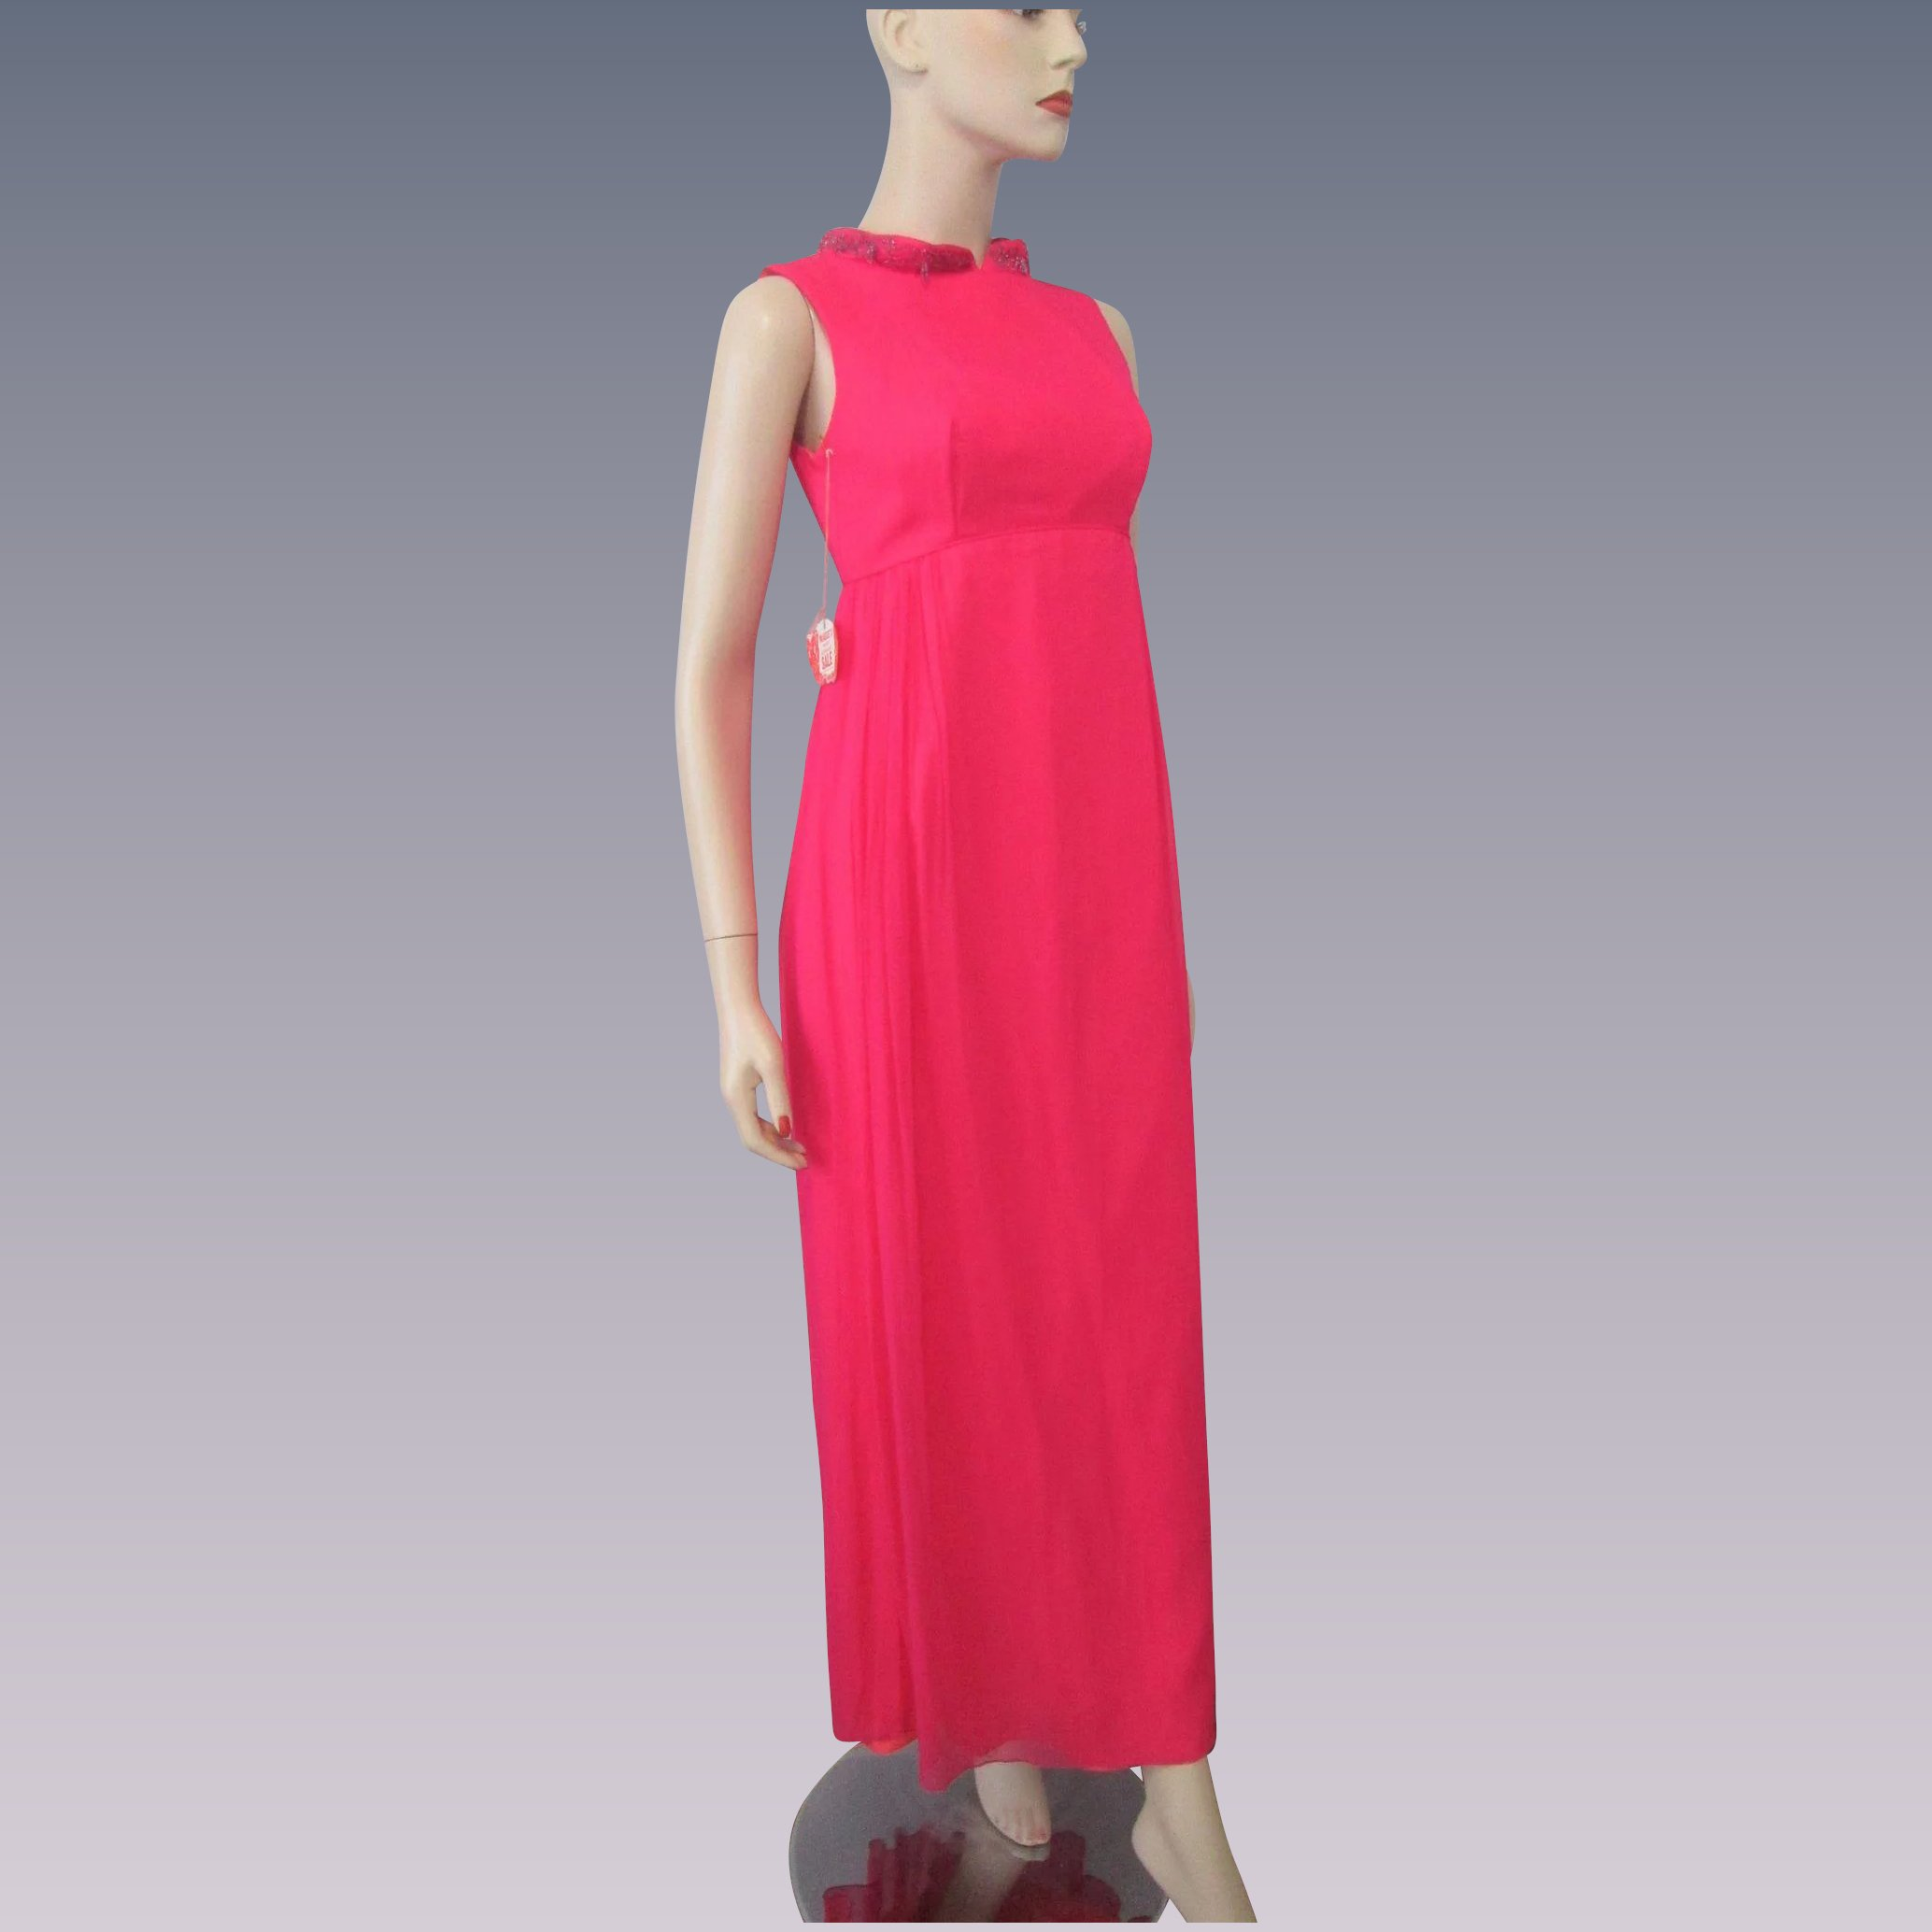 Hot Pink Beaded Evening Gown Vintage 1960s Maxi Party Prom ...